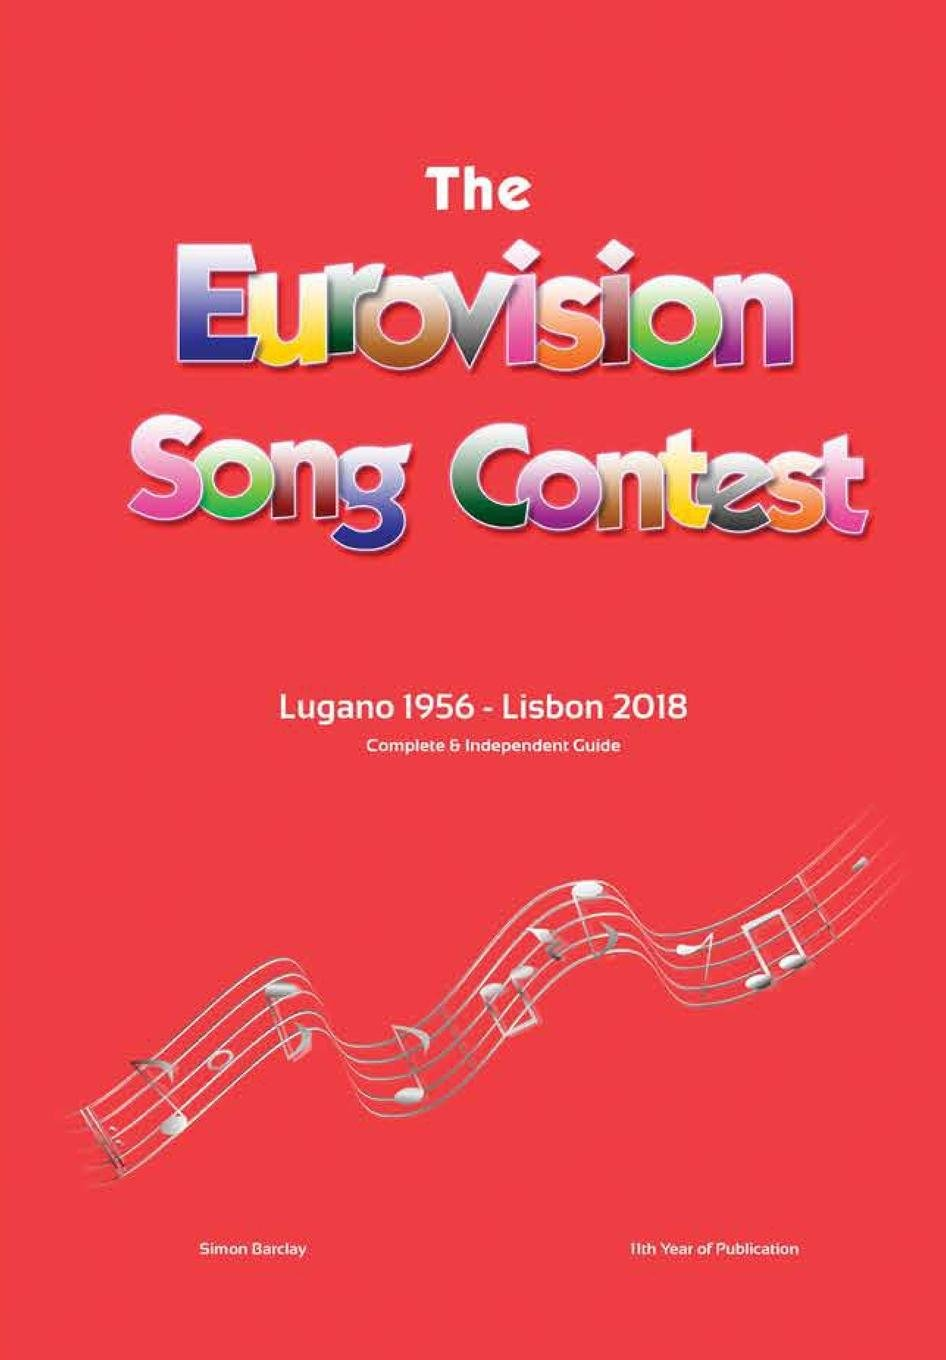 Download The Complete & Independent Guide To The Eurovision Song Contest: Lugano 1956 - Lisbon 2018 